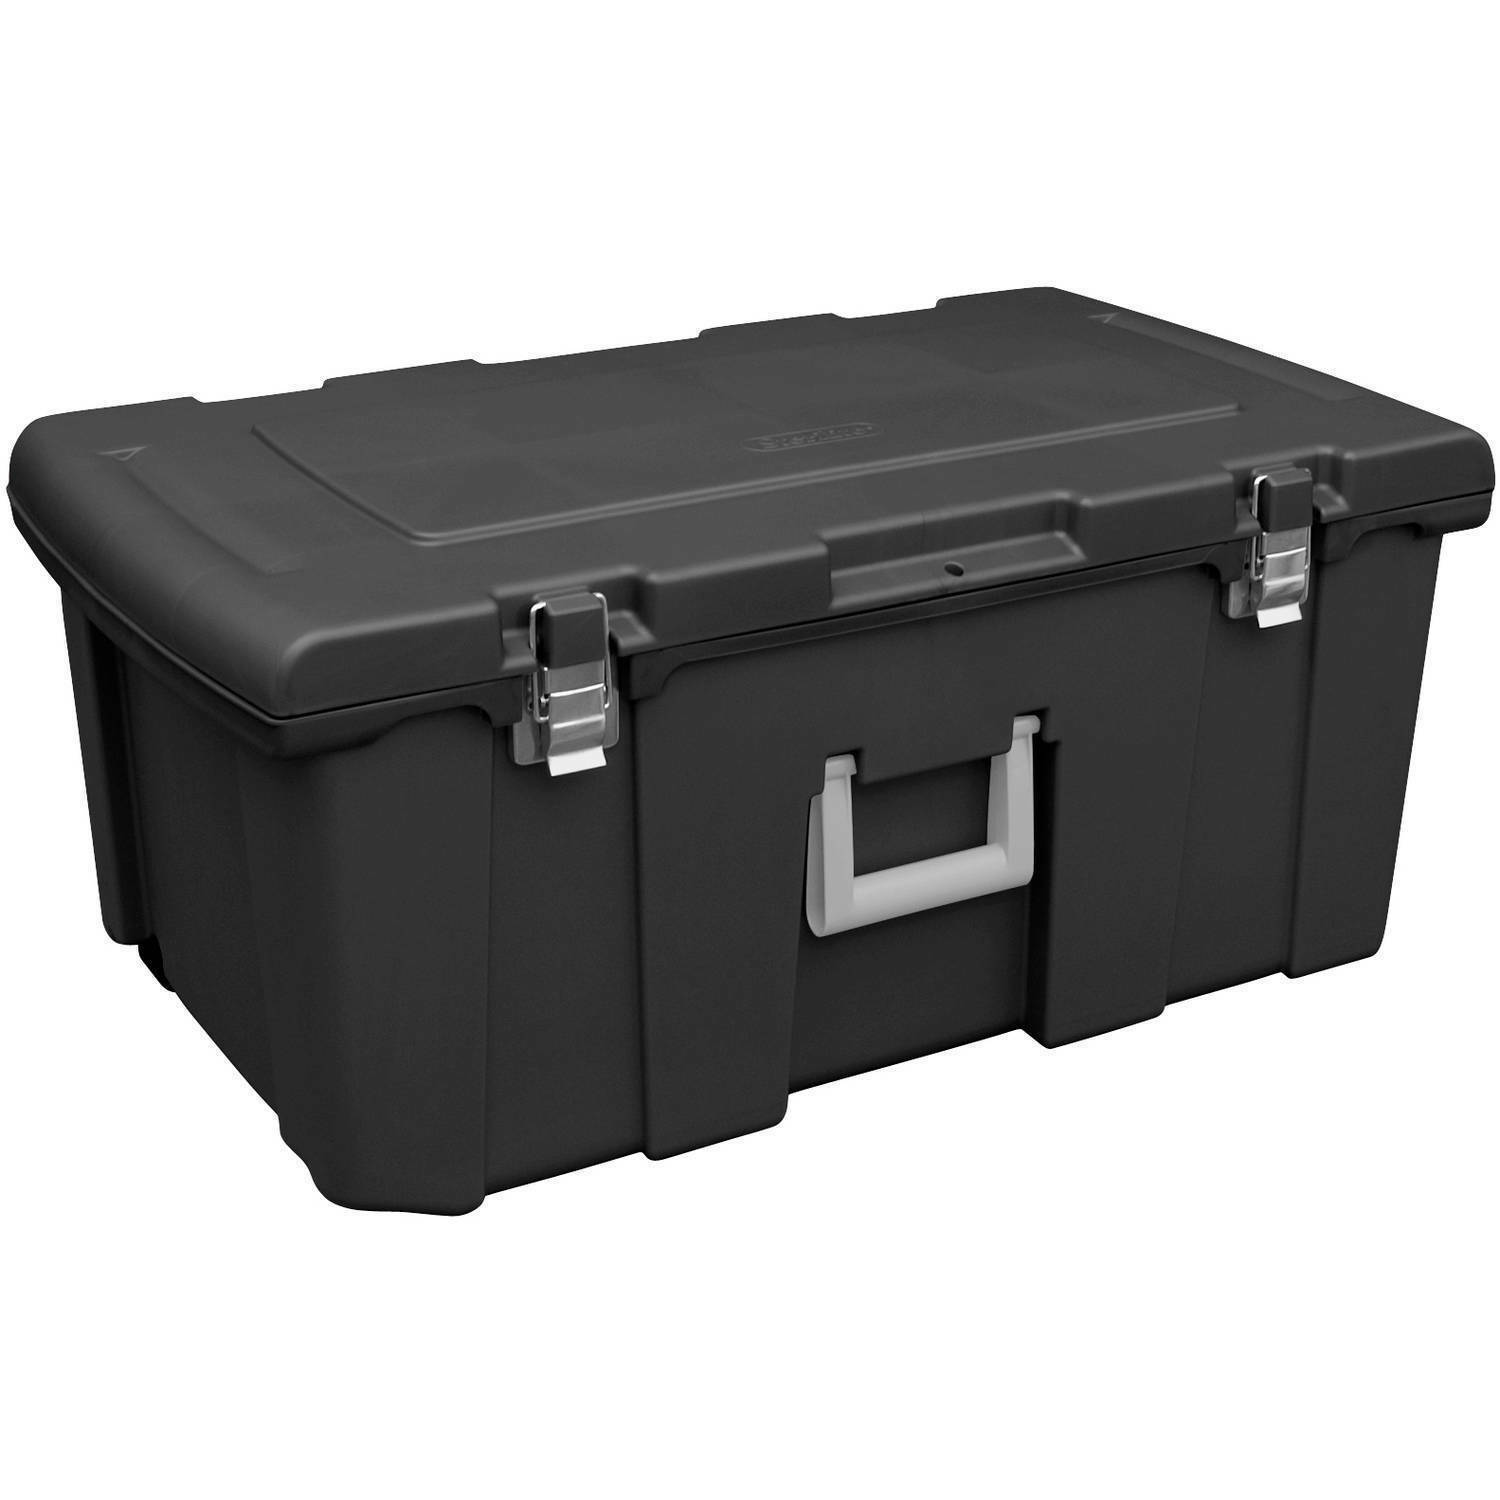 Exceptionnel 1 Of 7Only 1 Available Large Plastic Storage Box Containers Organizer  Wheeled Trunk Chest Footlocker